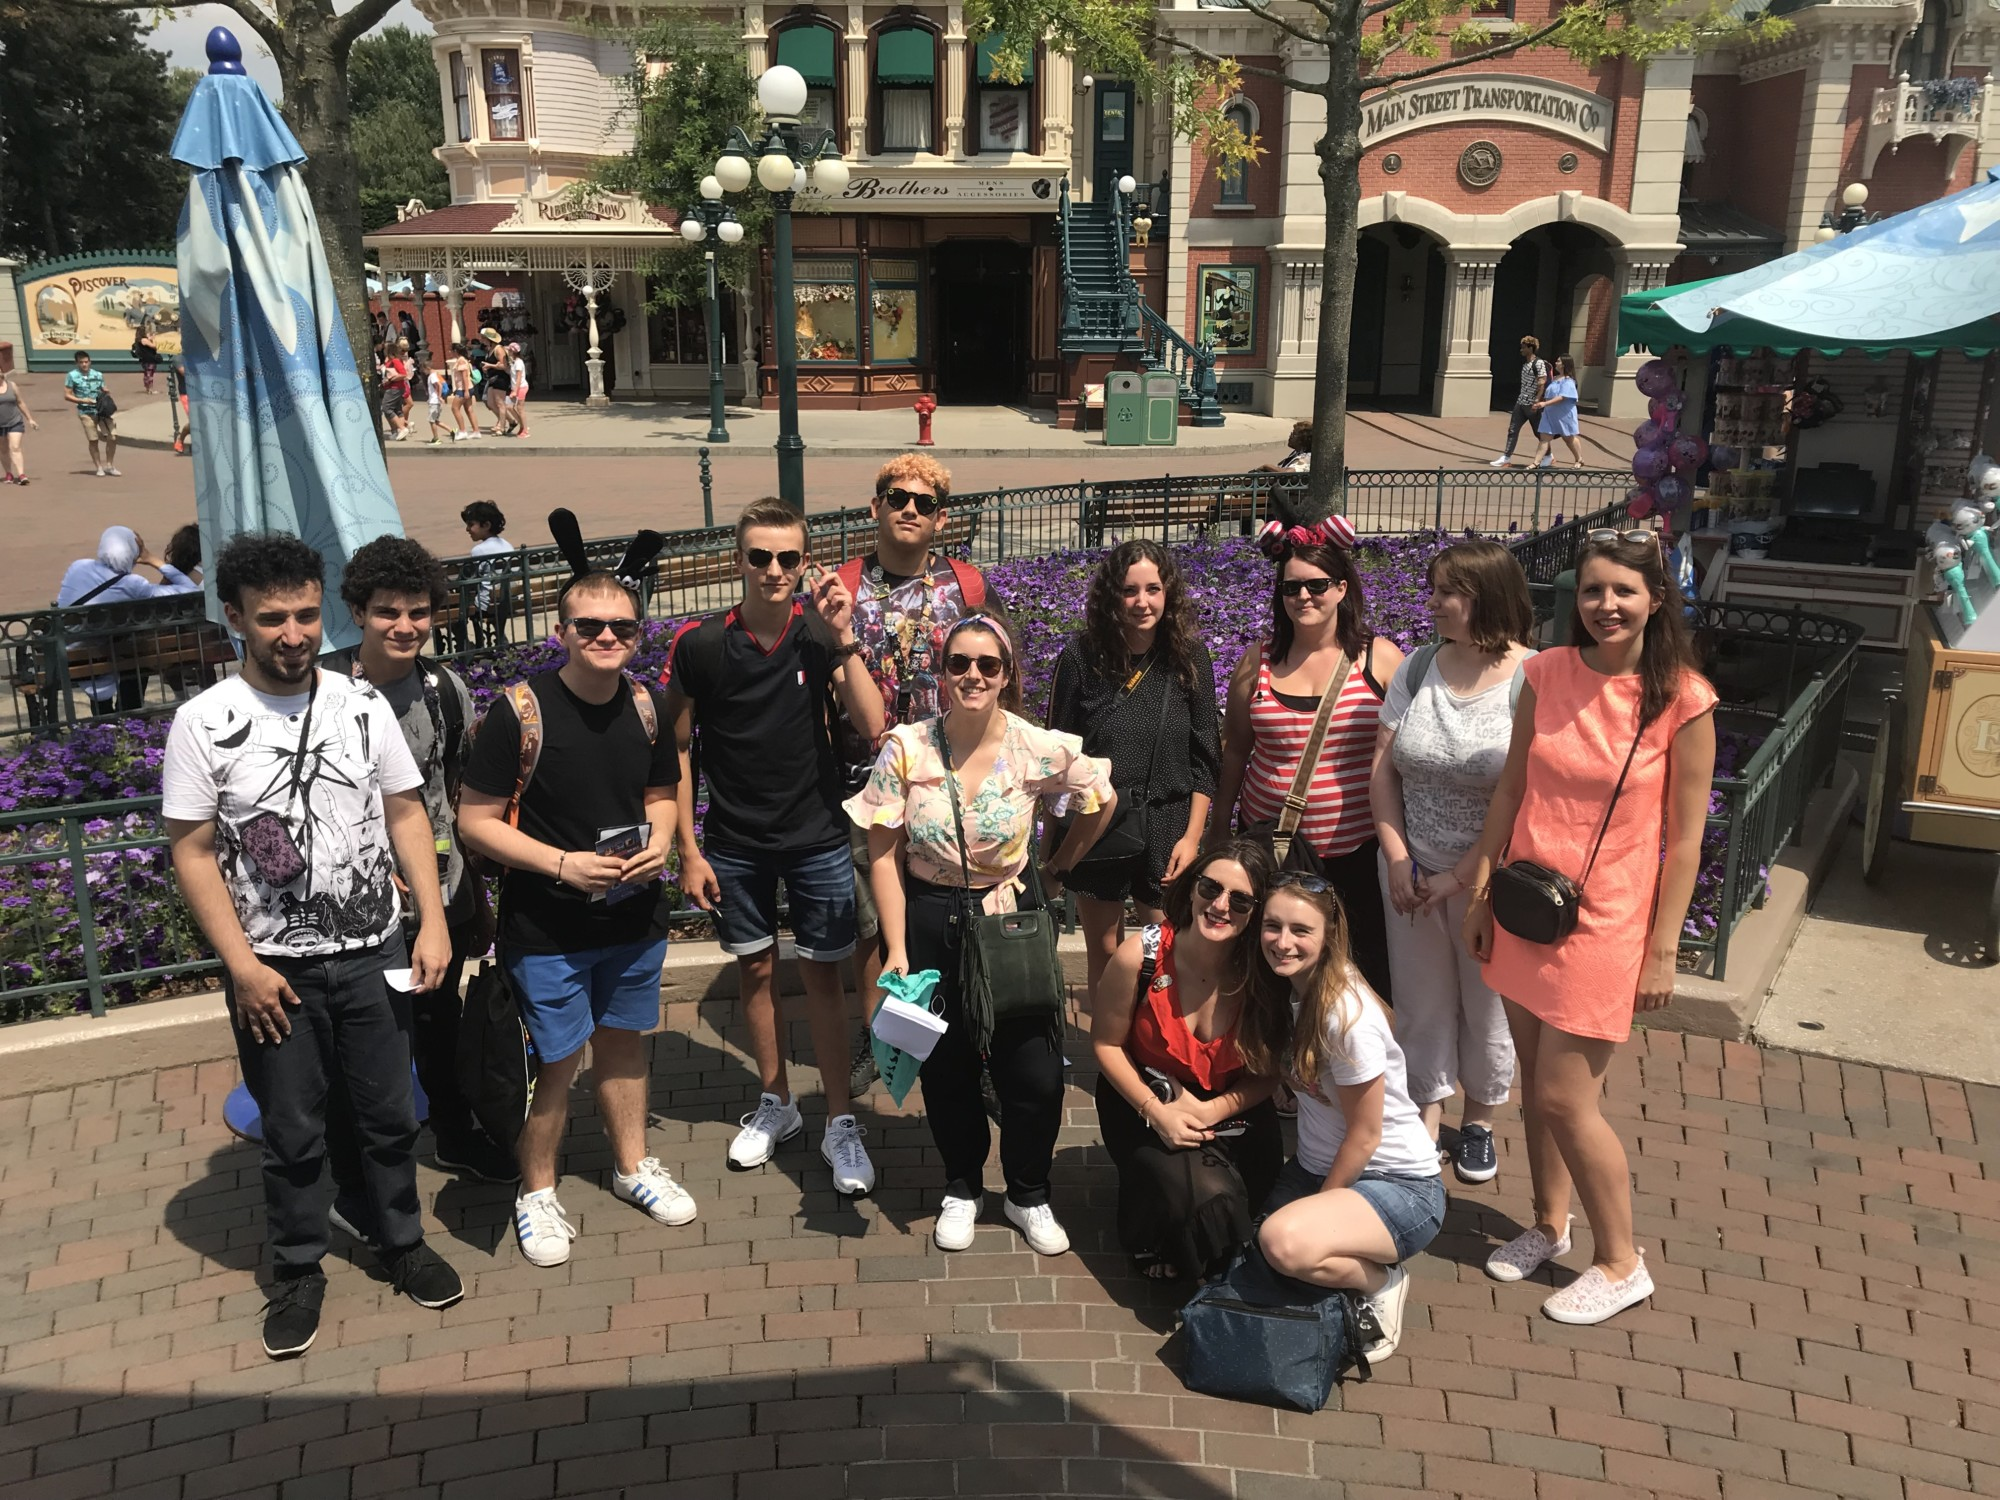 Course d'orientation - Quizz à Disneyland Paris